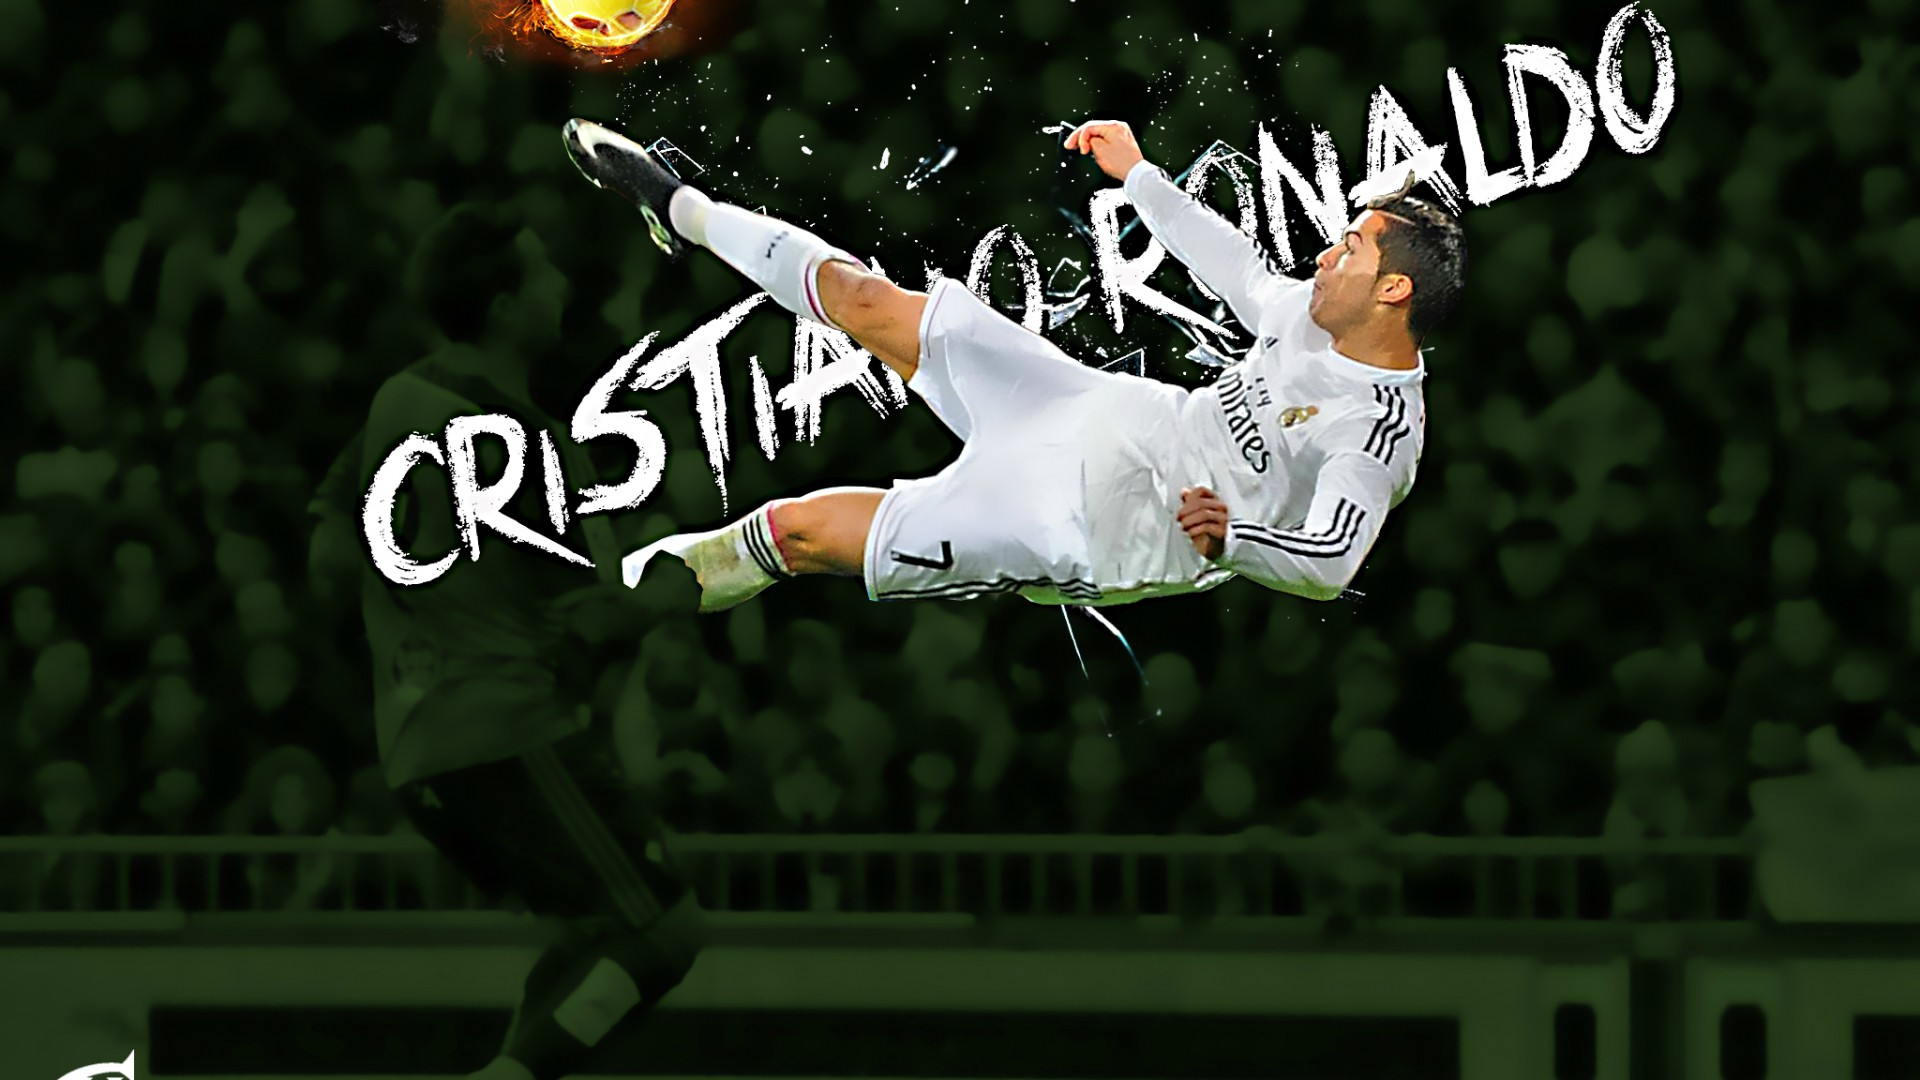 Download Cristiano Ronaldo CR7 Flying Shot Football HD Wallpaper 1920x1080